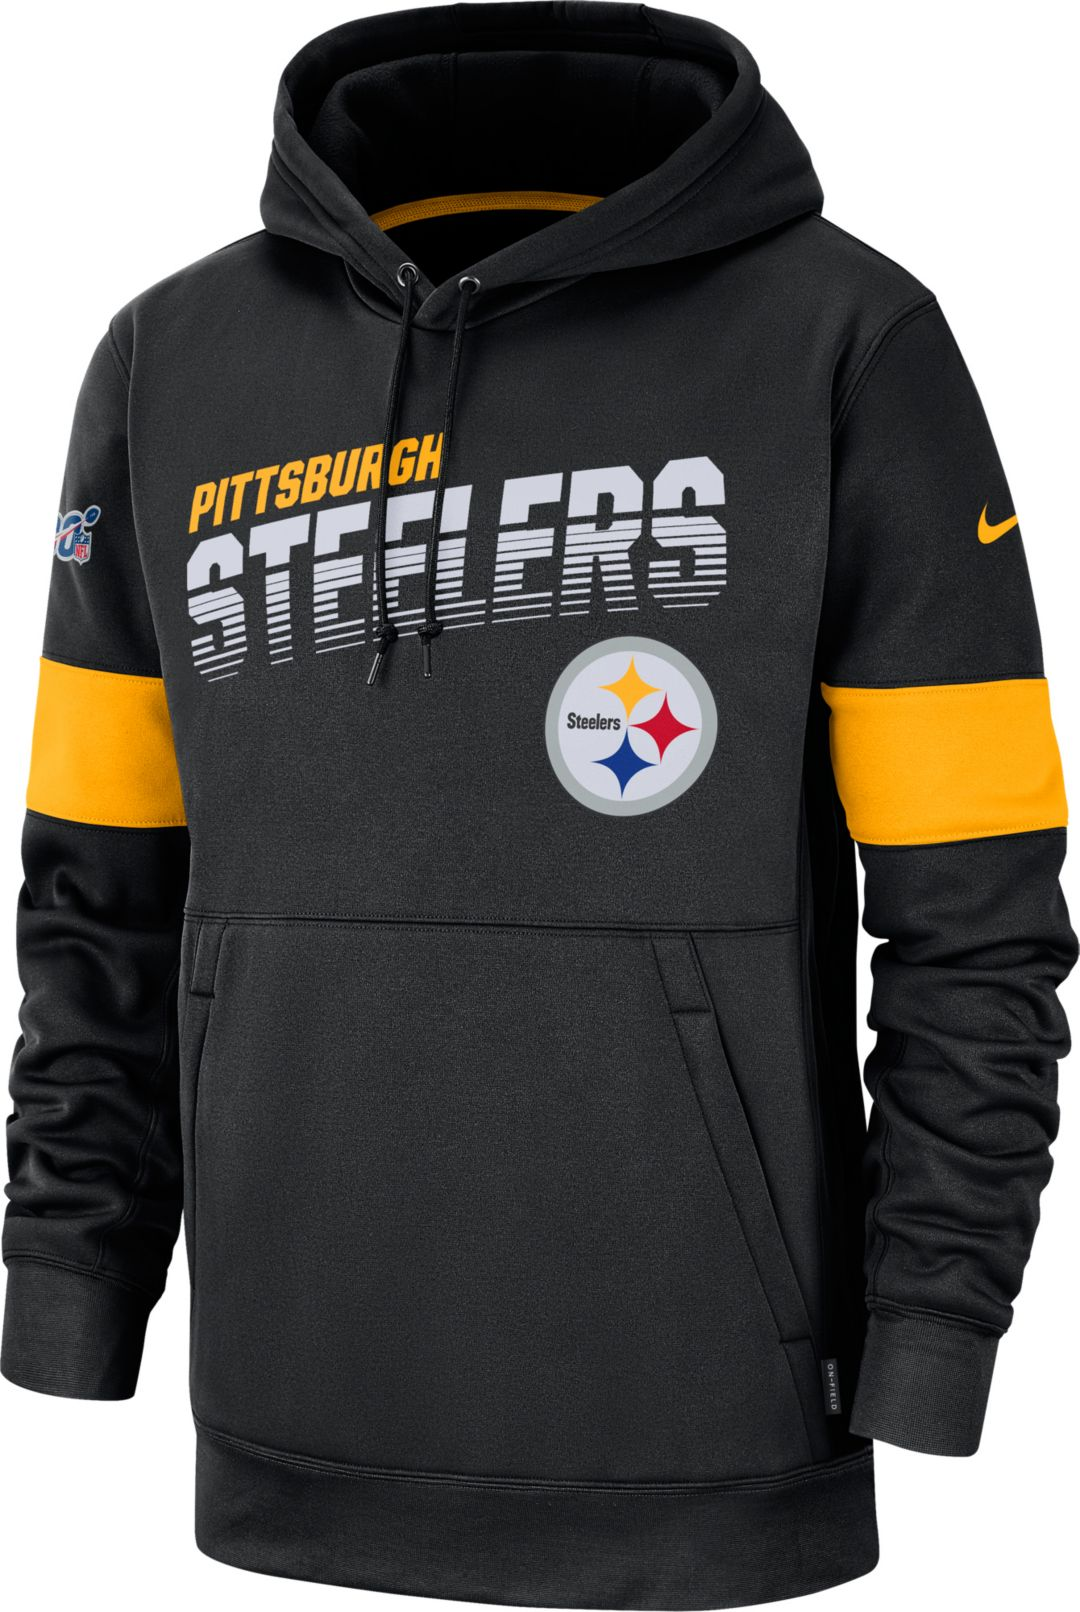 huge selection of 7db6f 1a7bf Nike Men's Pittsburgh Steelers 100th Sideline Therma-FIT Black Pullover  Hoodie